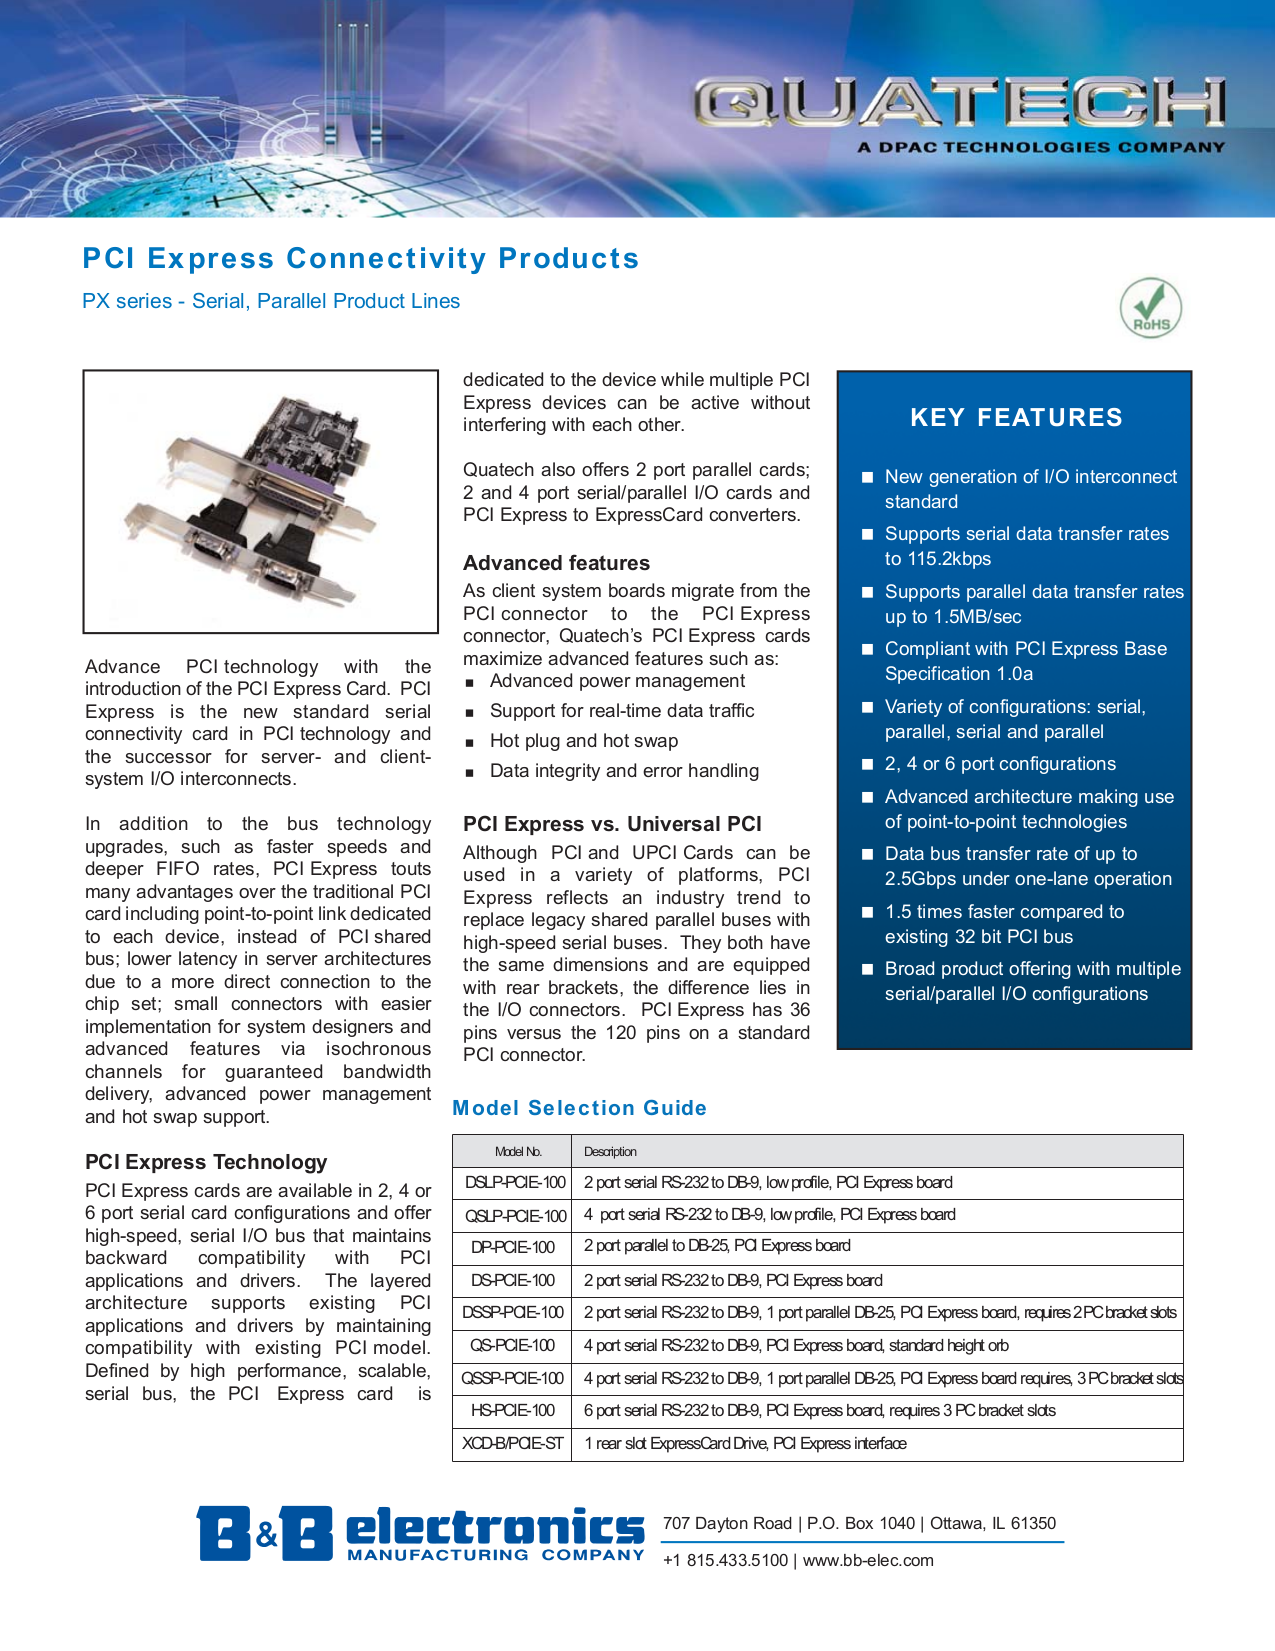 pdf for Quatech Other HS-PCIE-100 PCI Express Devices manual